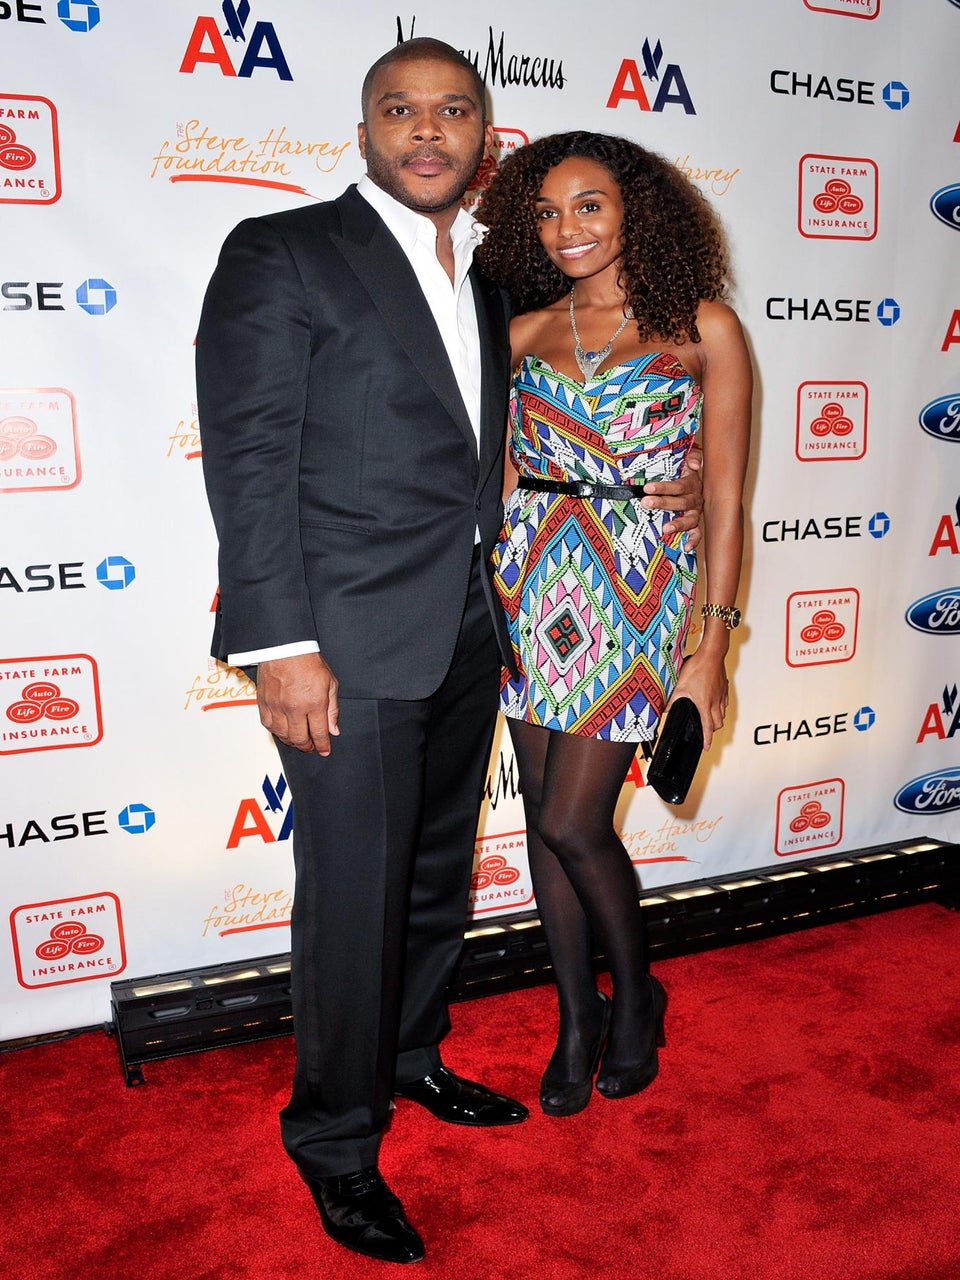 Tyler Perry Confirms He's Going to be a Dad